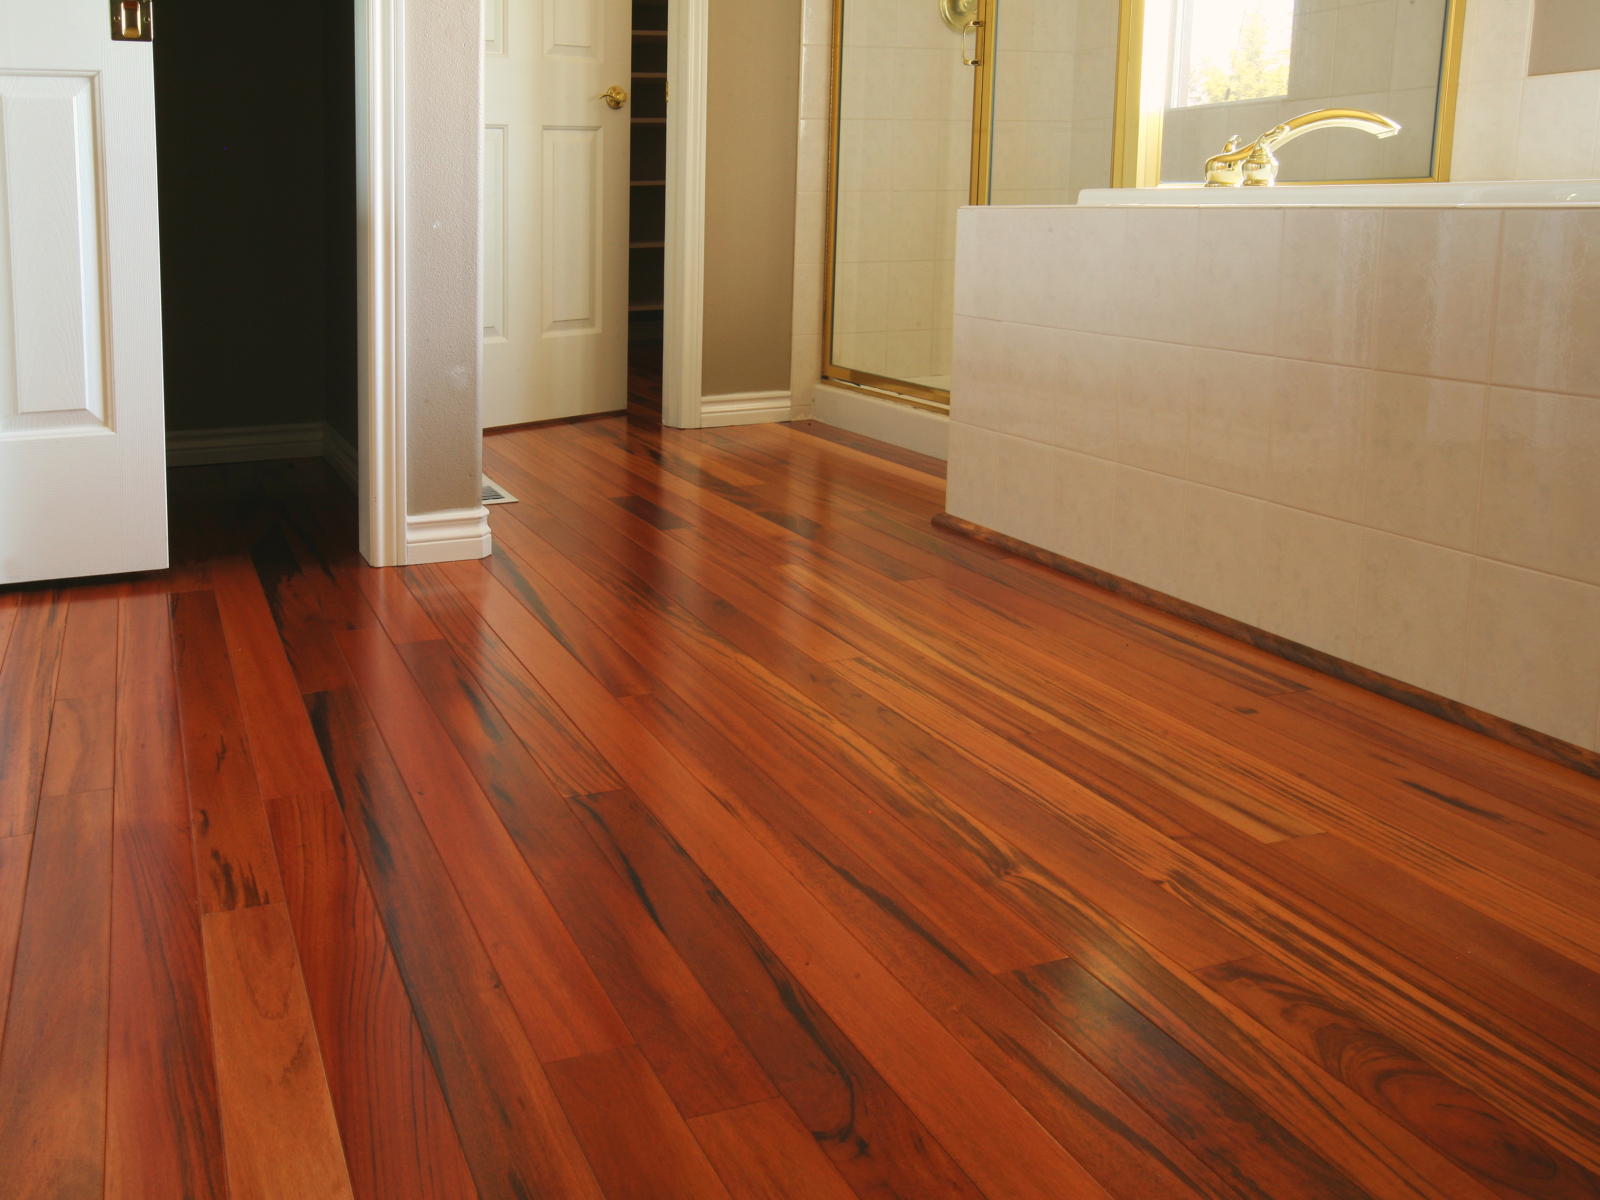 Hardwood Floors Are a Valuable Addition to Your House